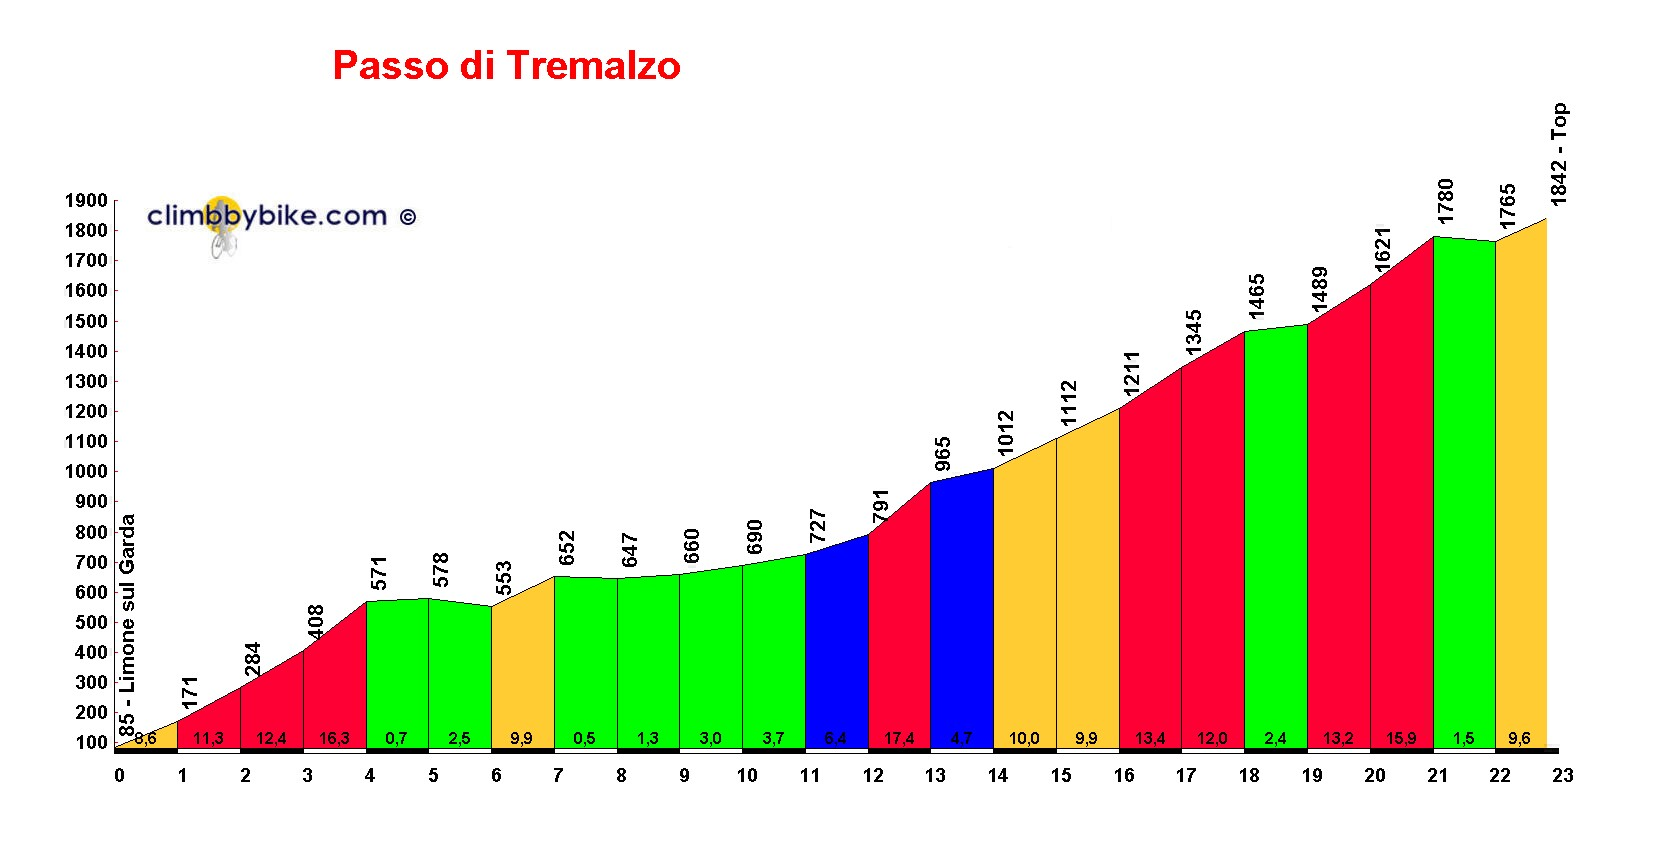 Elevation profile for Passo di Tremalzo